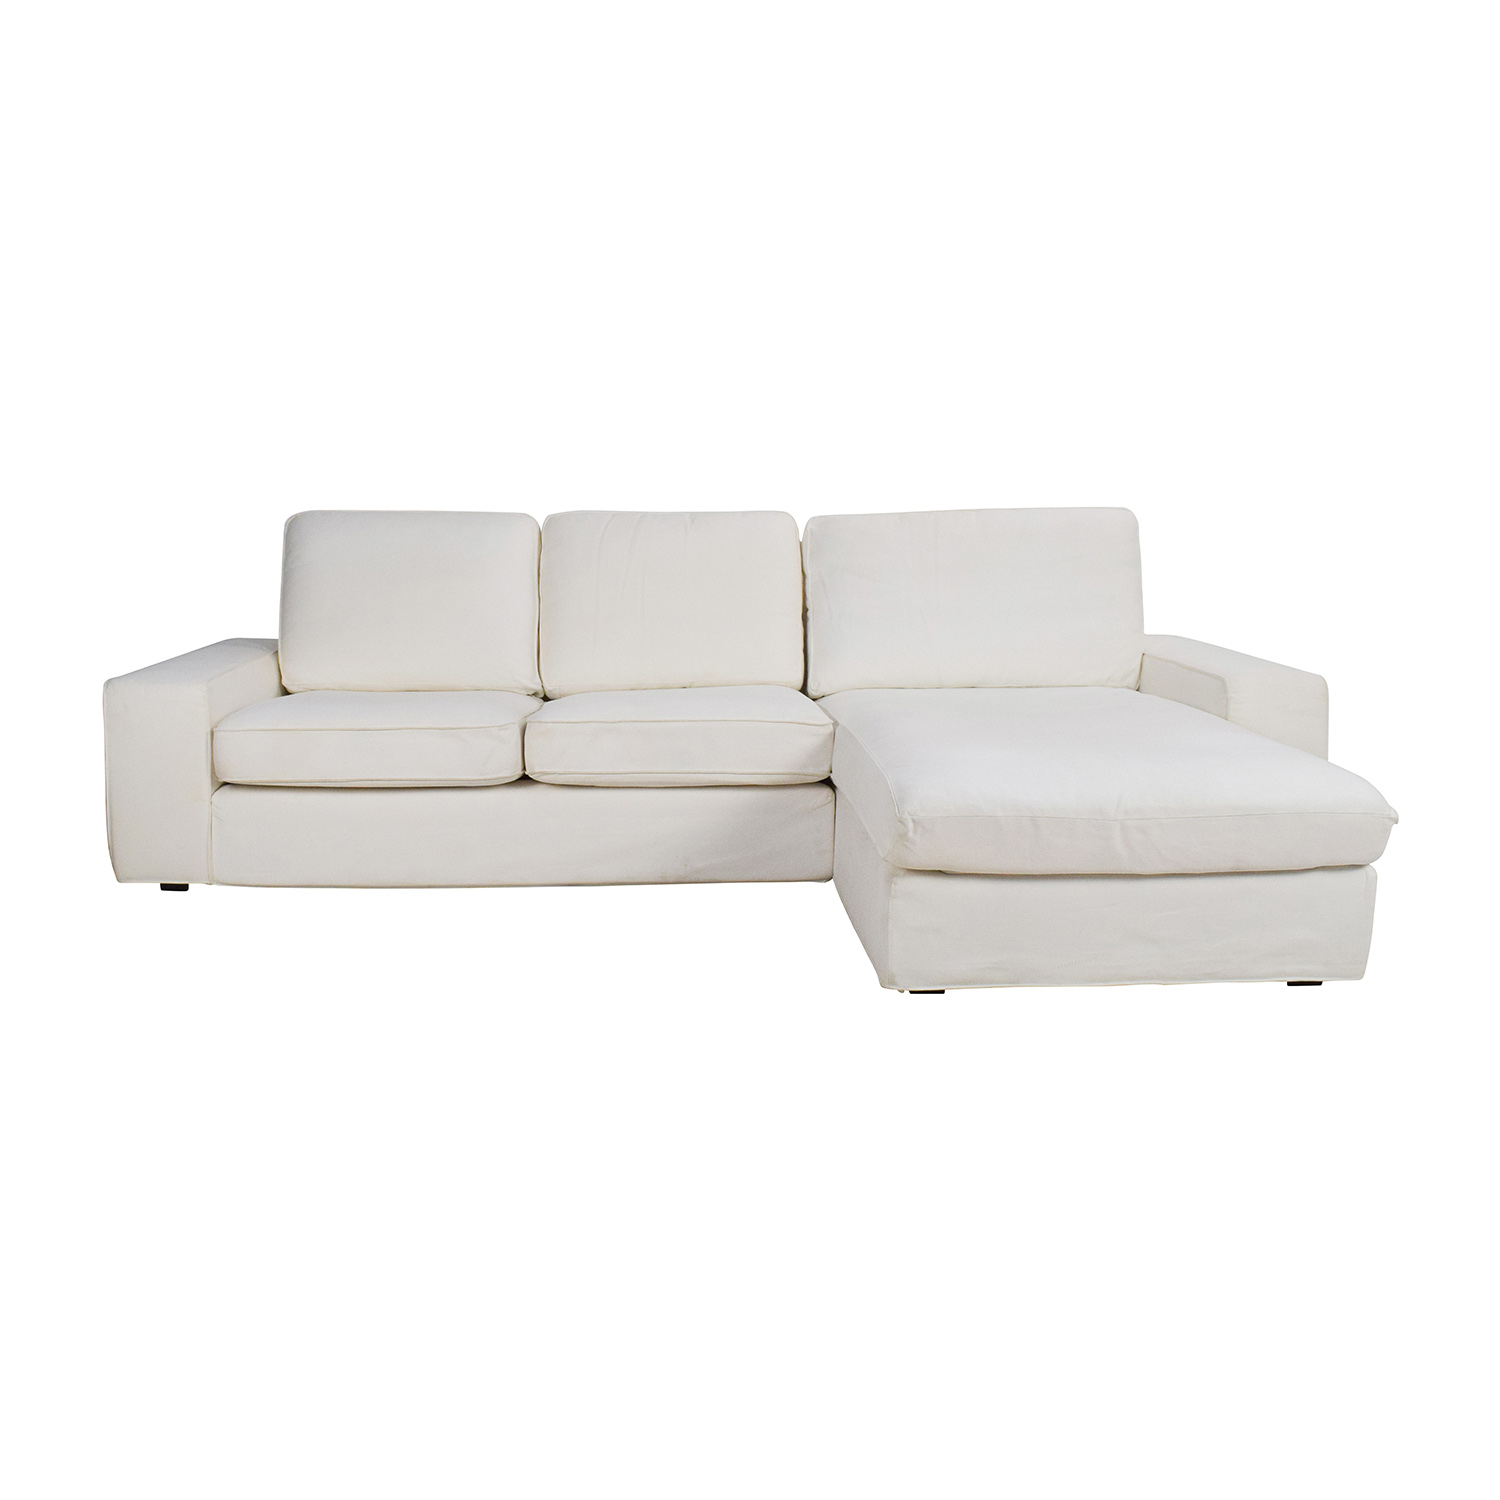 69% OFF - IKEA IKEA Kivik Sofa and Chaise / Sofas